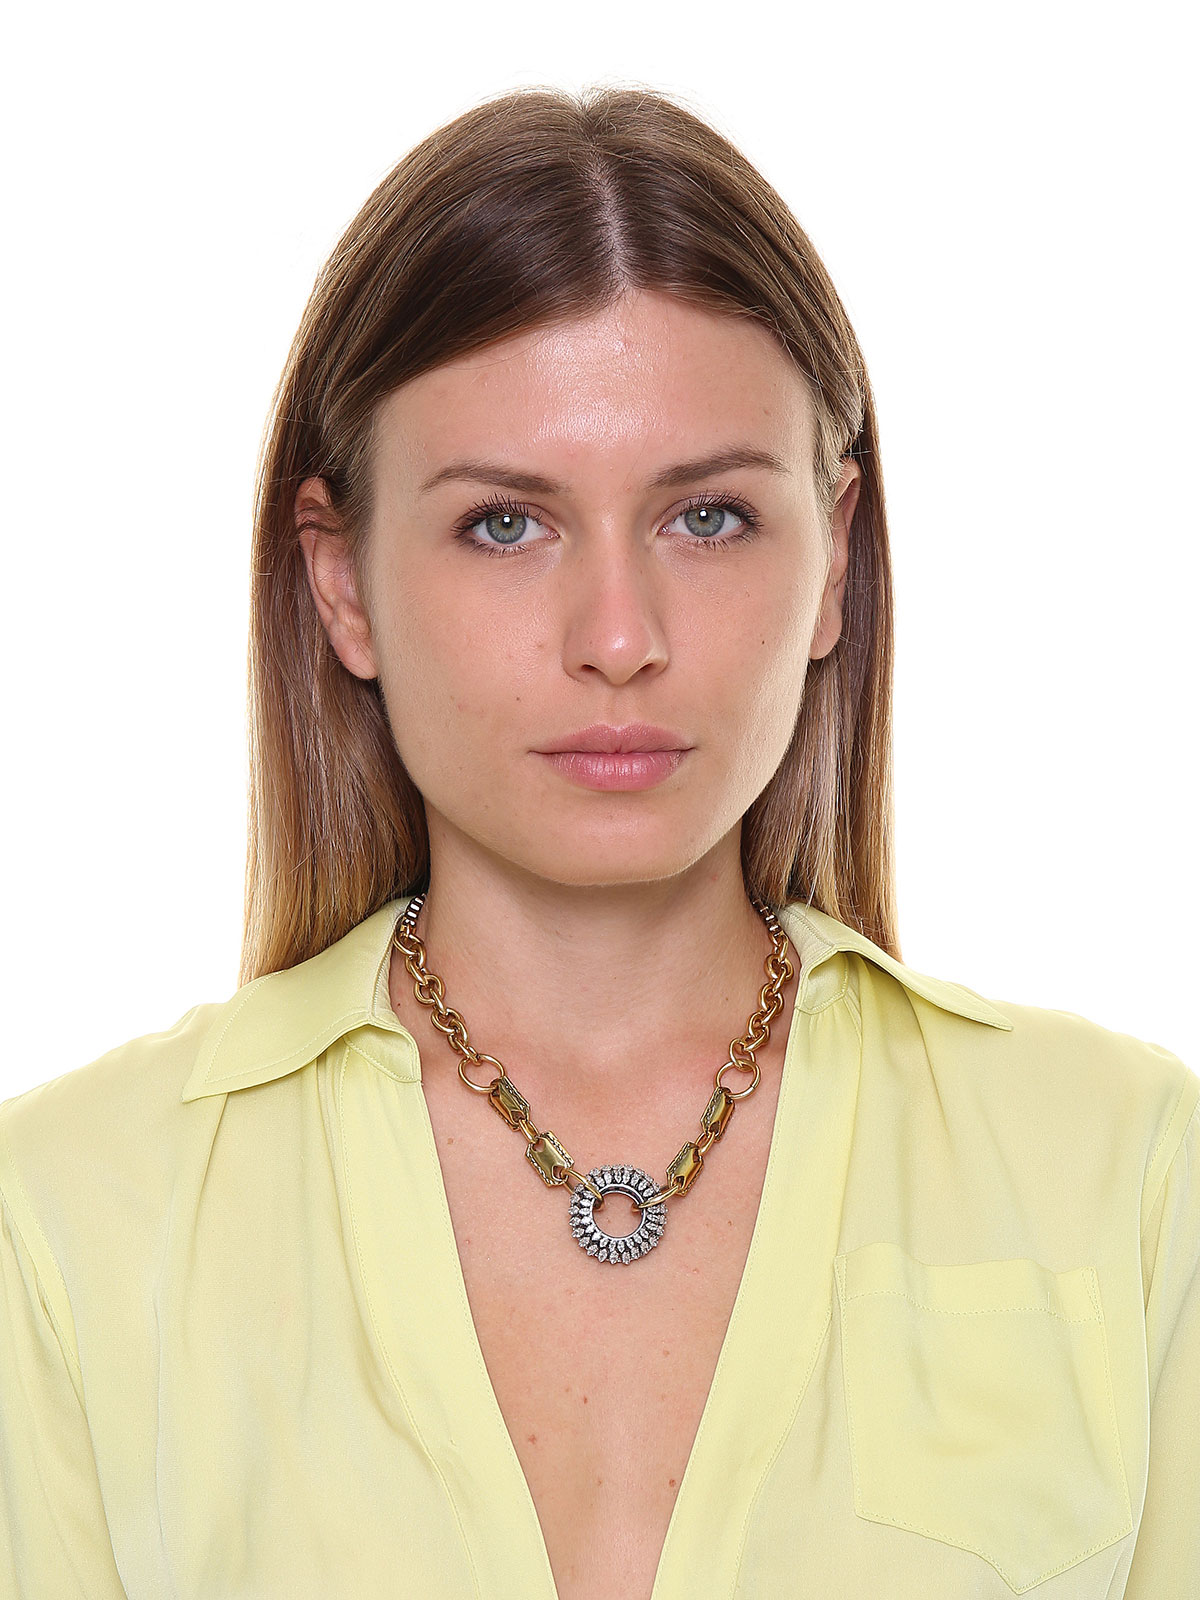 Chain necklace with central jewel decoration